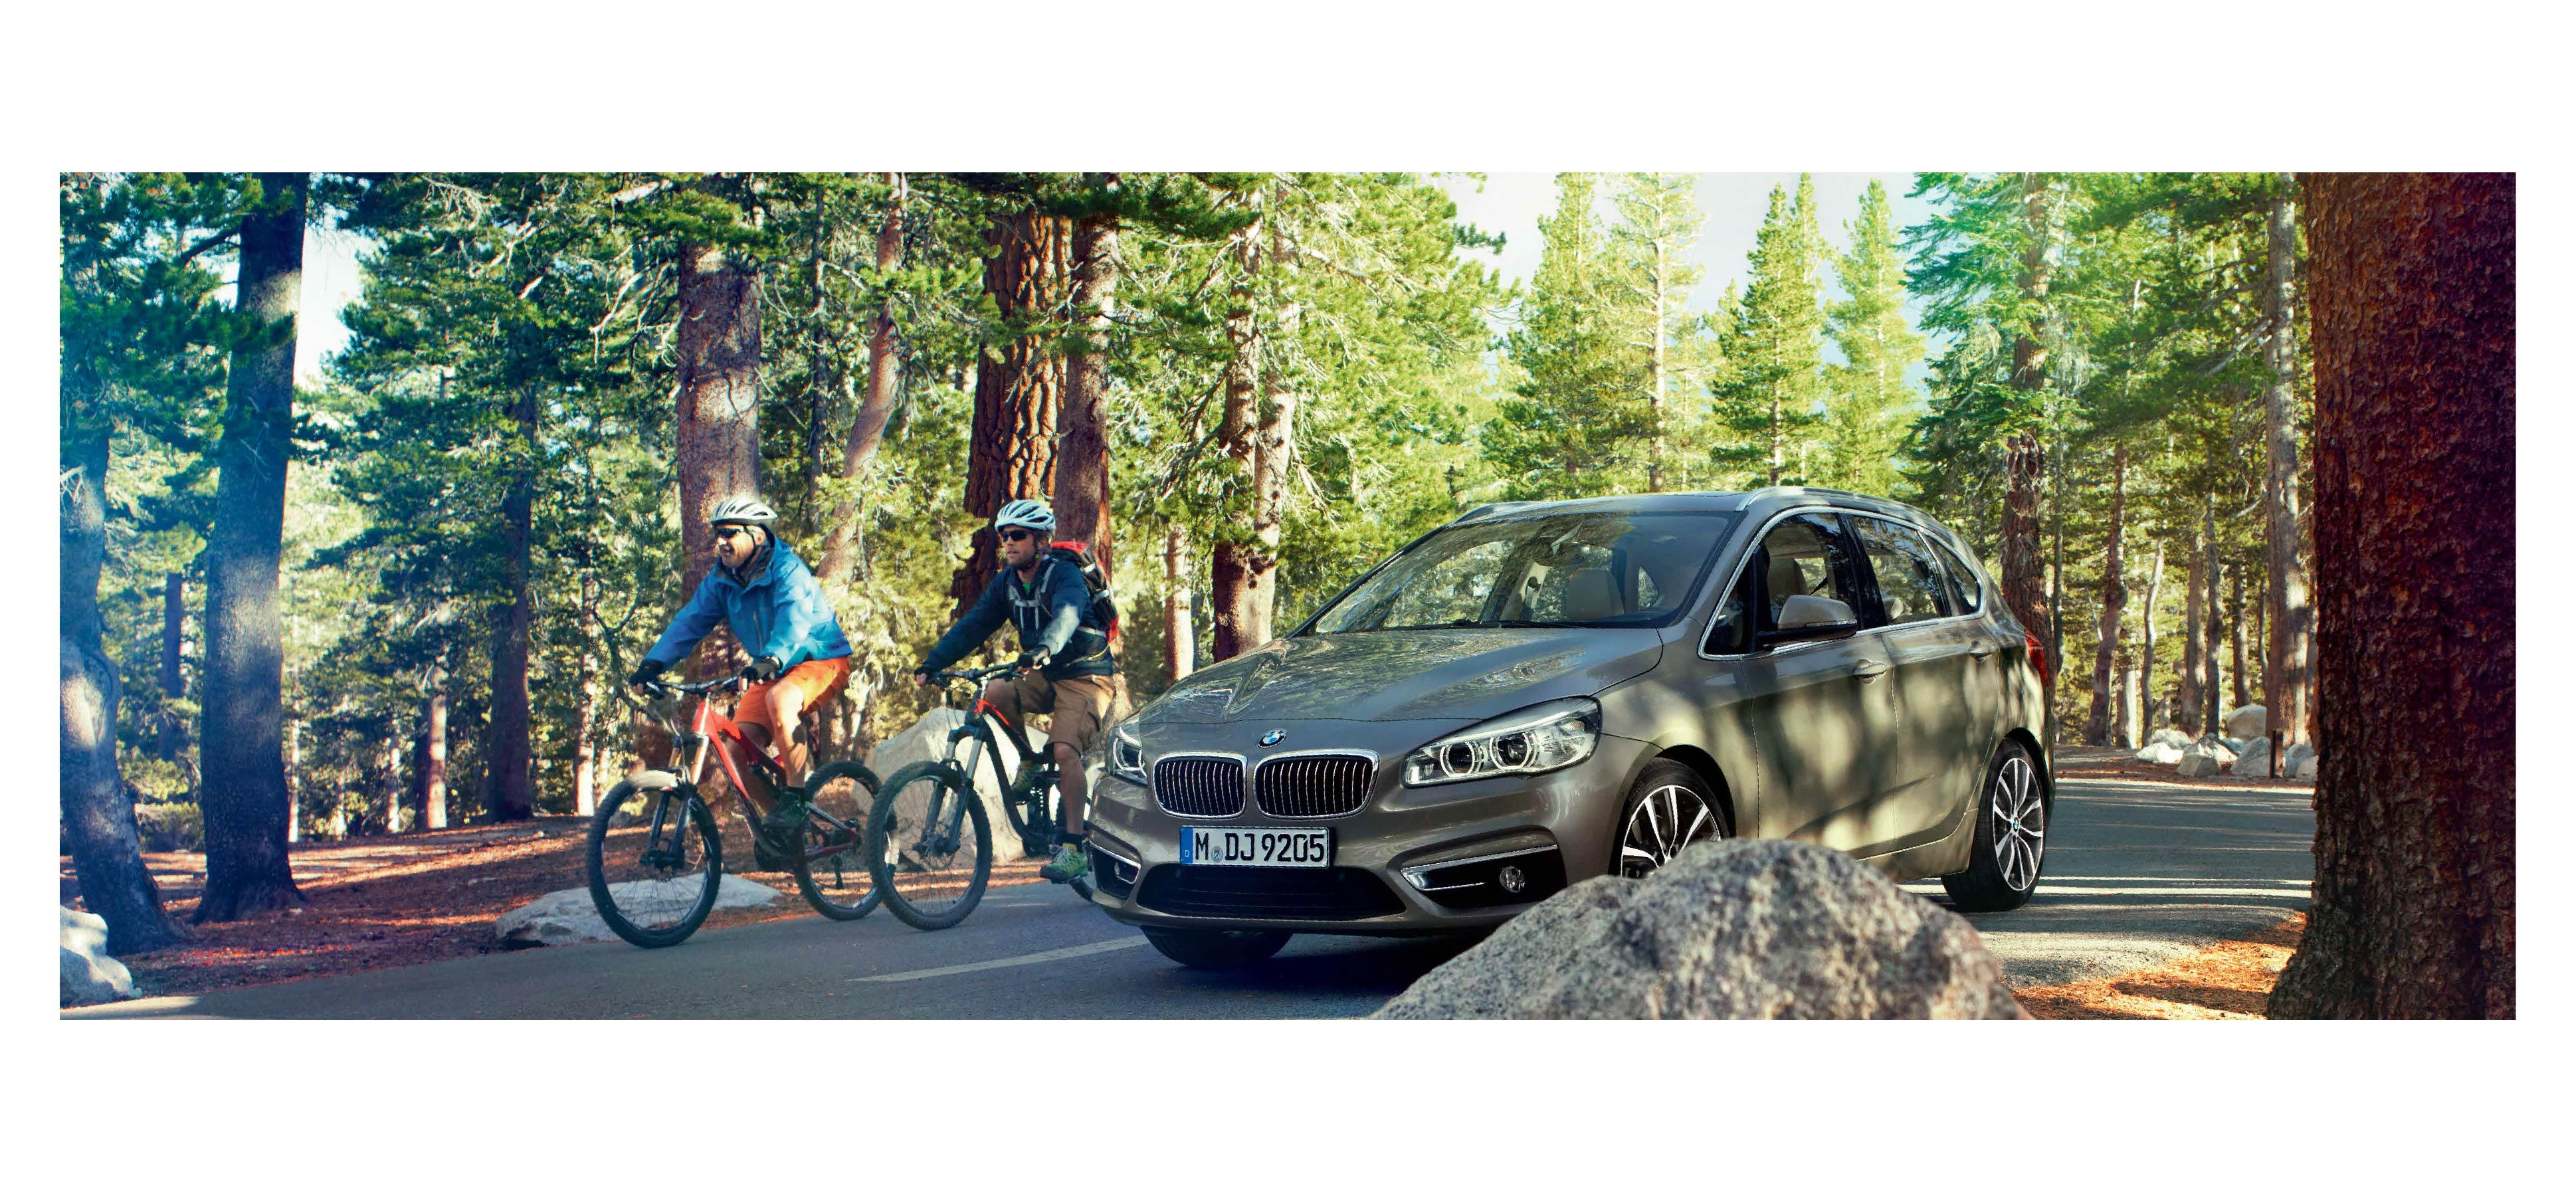 05_BMW Summer cam_outdoor banner_Final.jpg